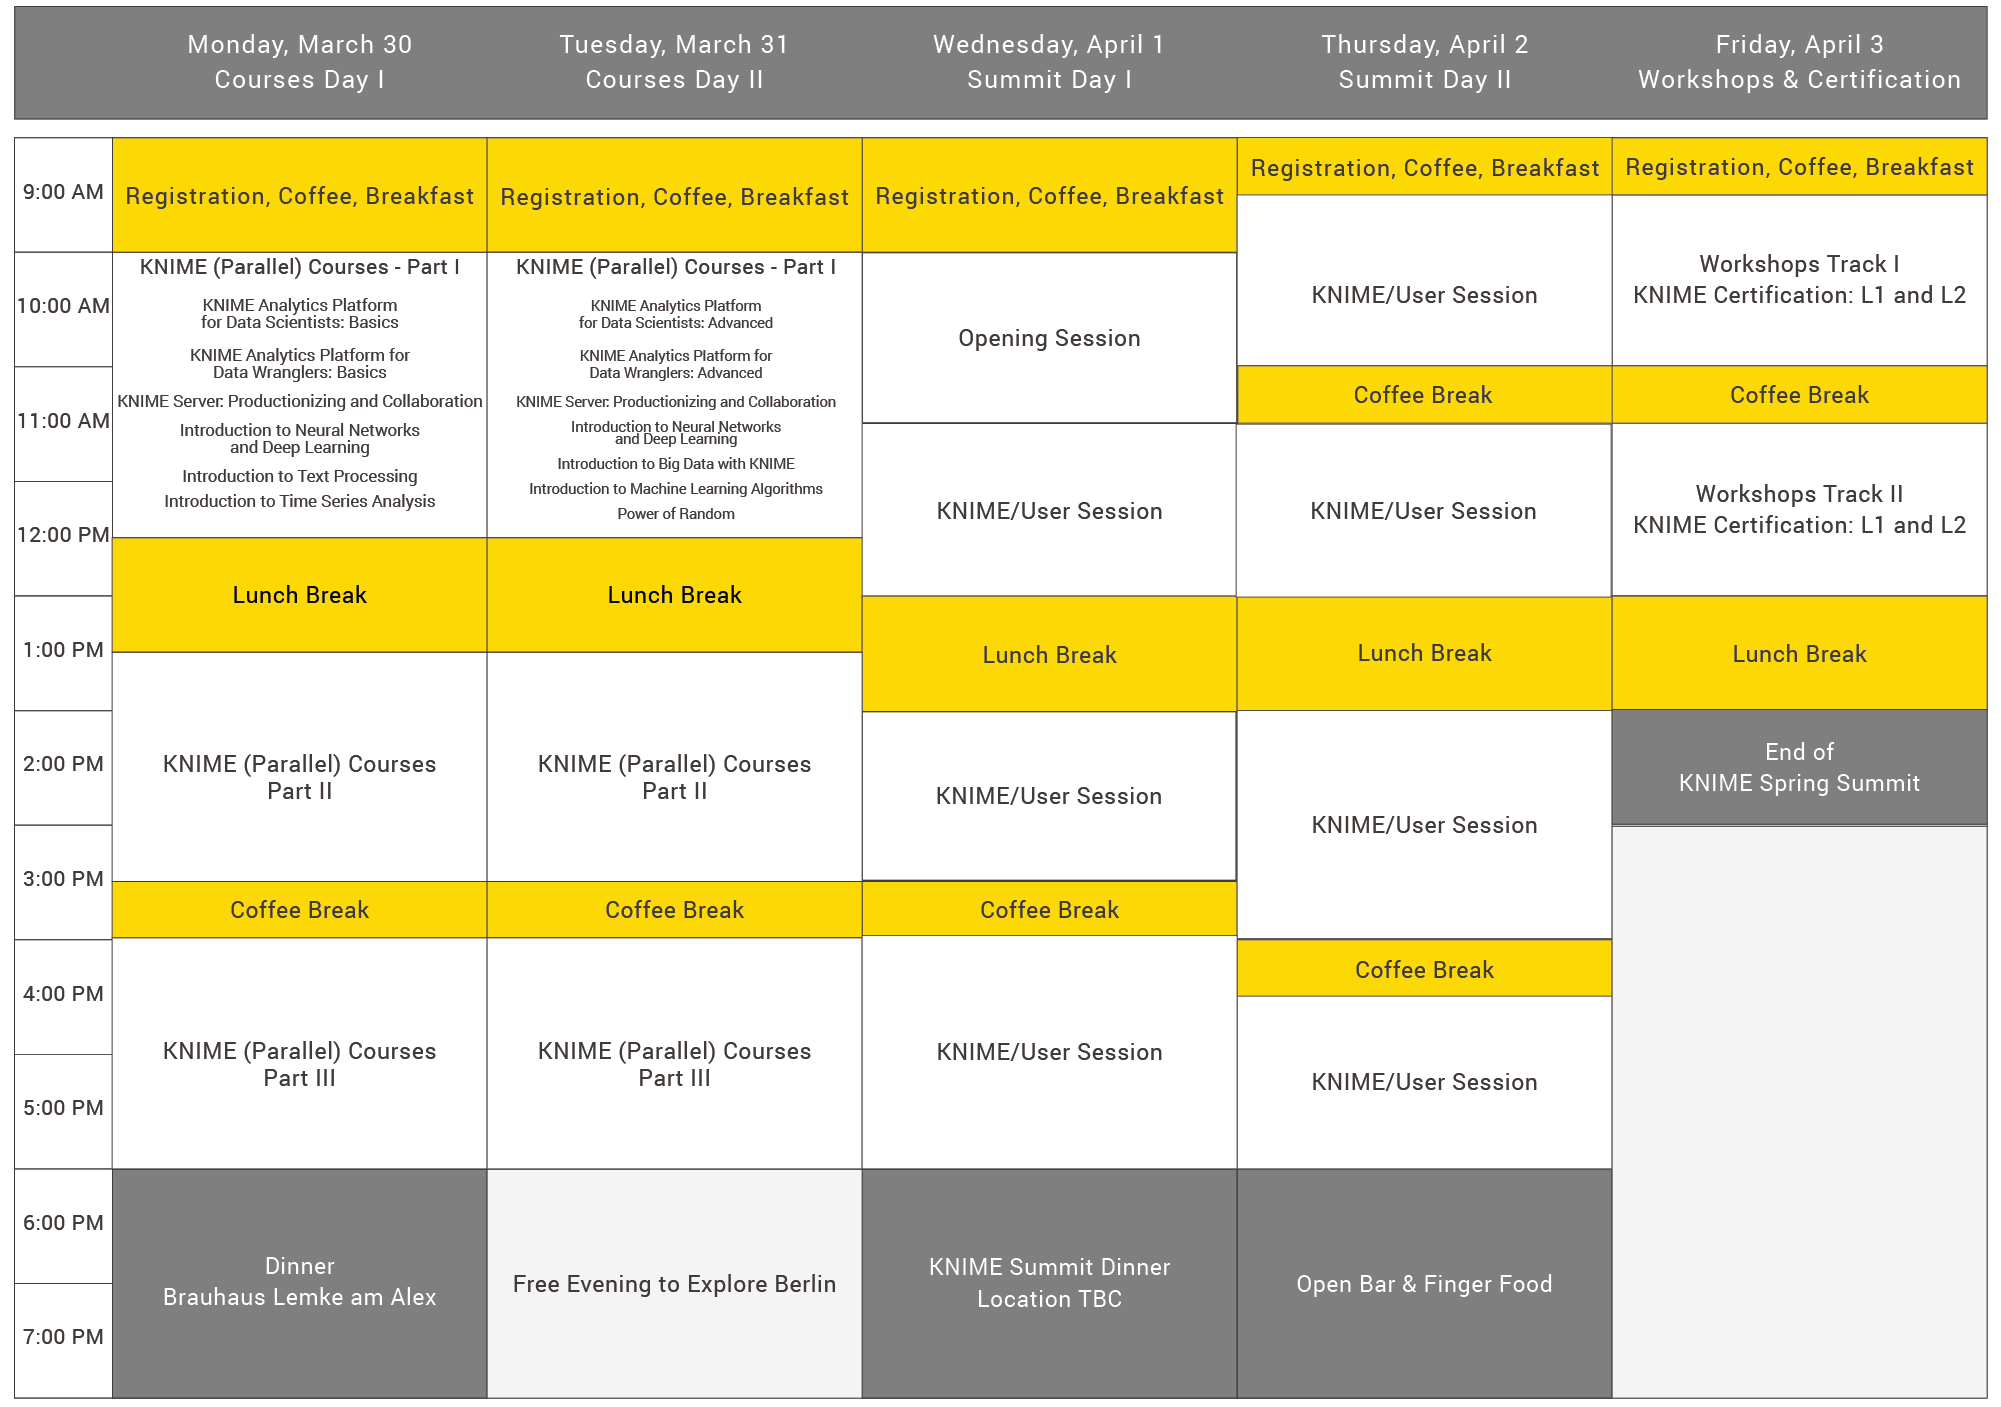 KNIME Spring Summit 2020 Program Overview